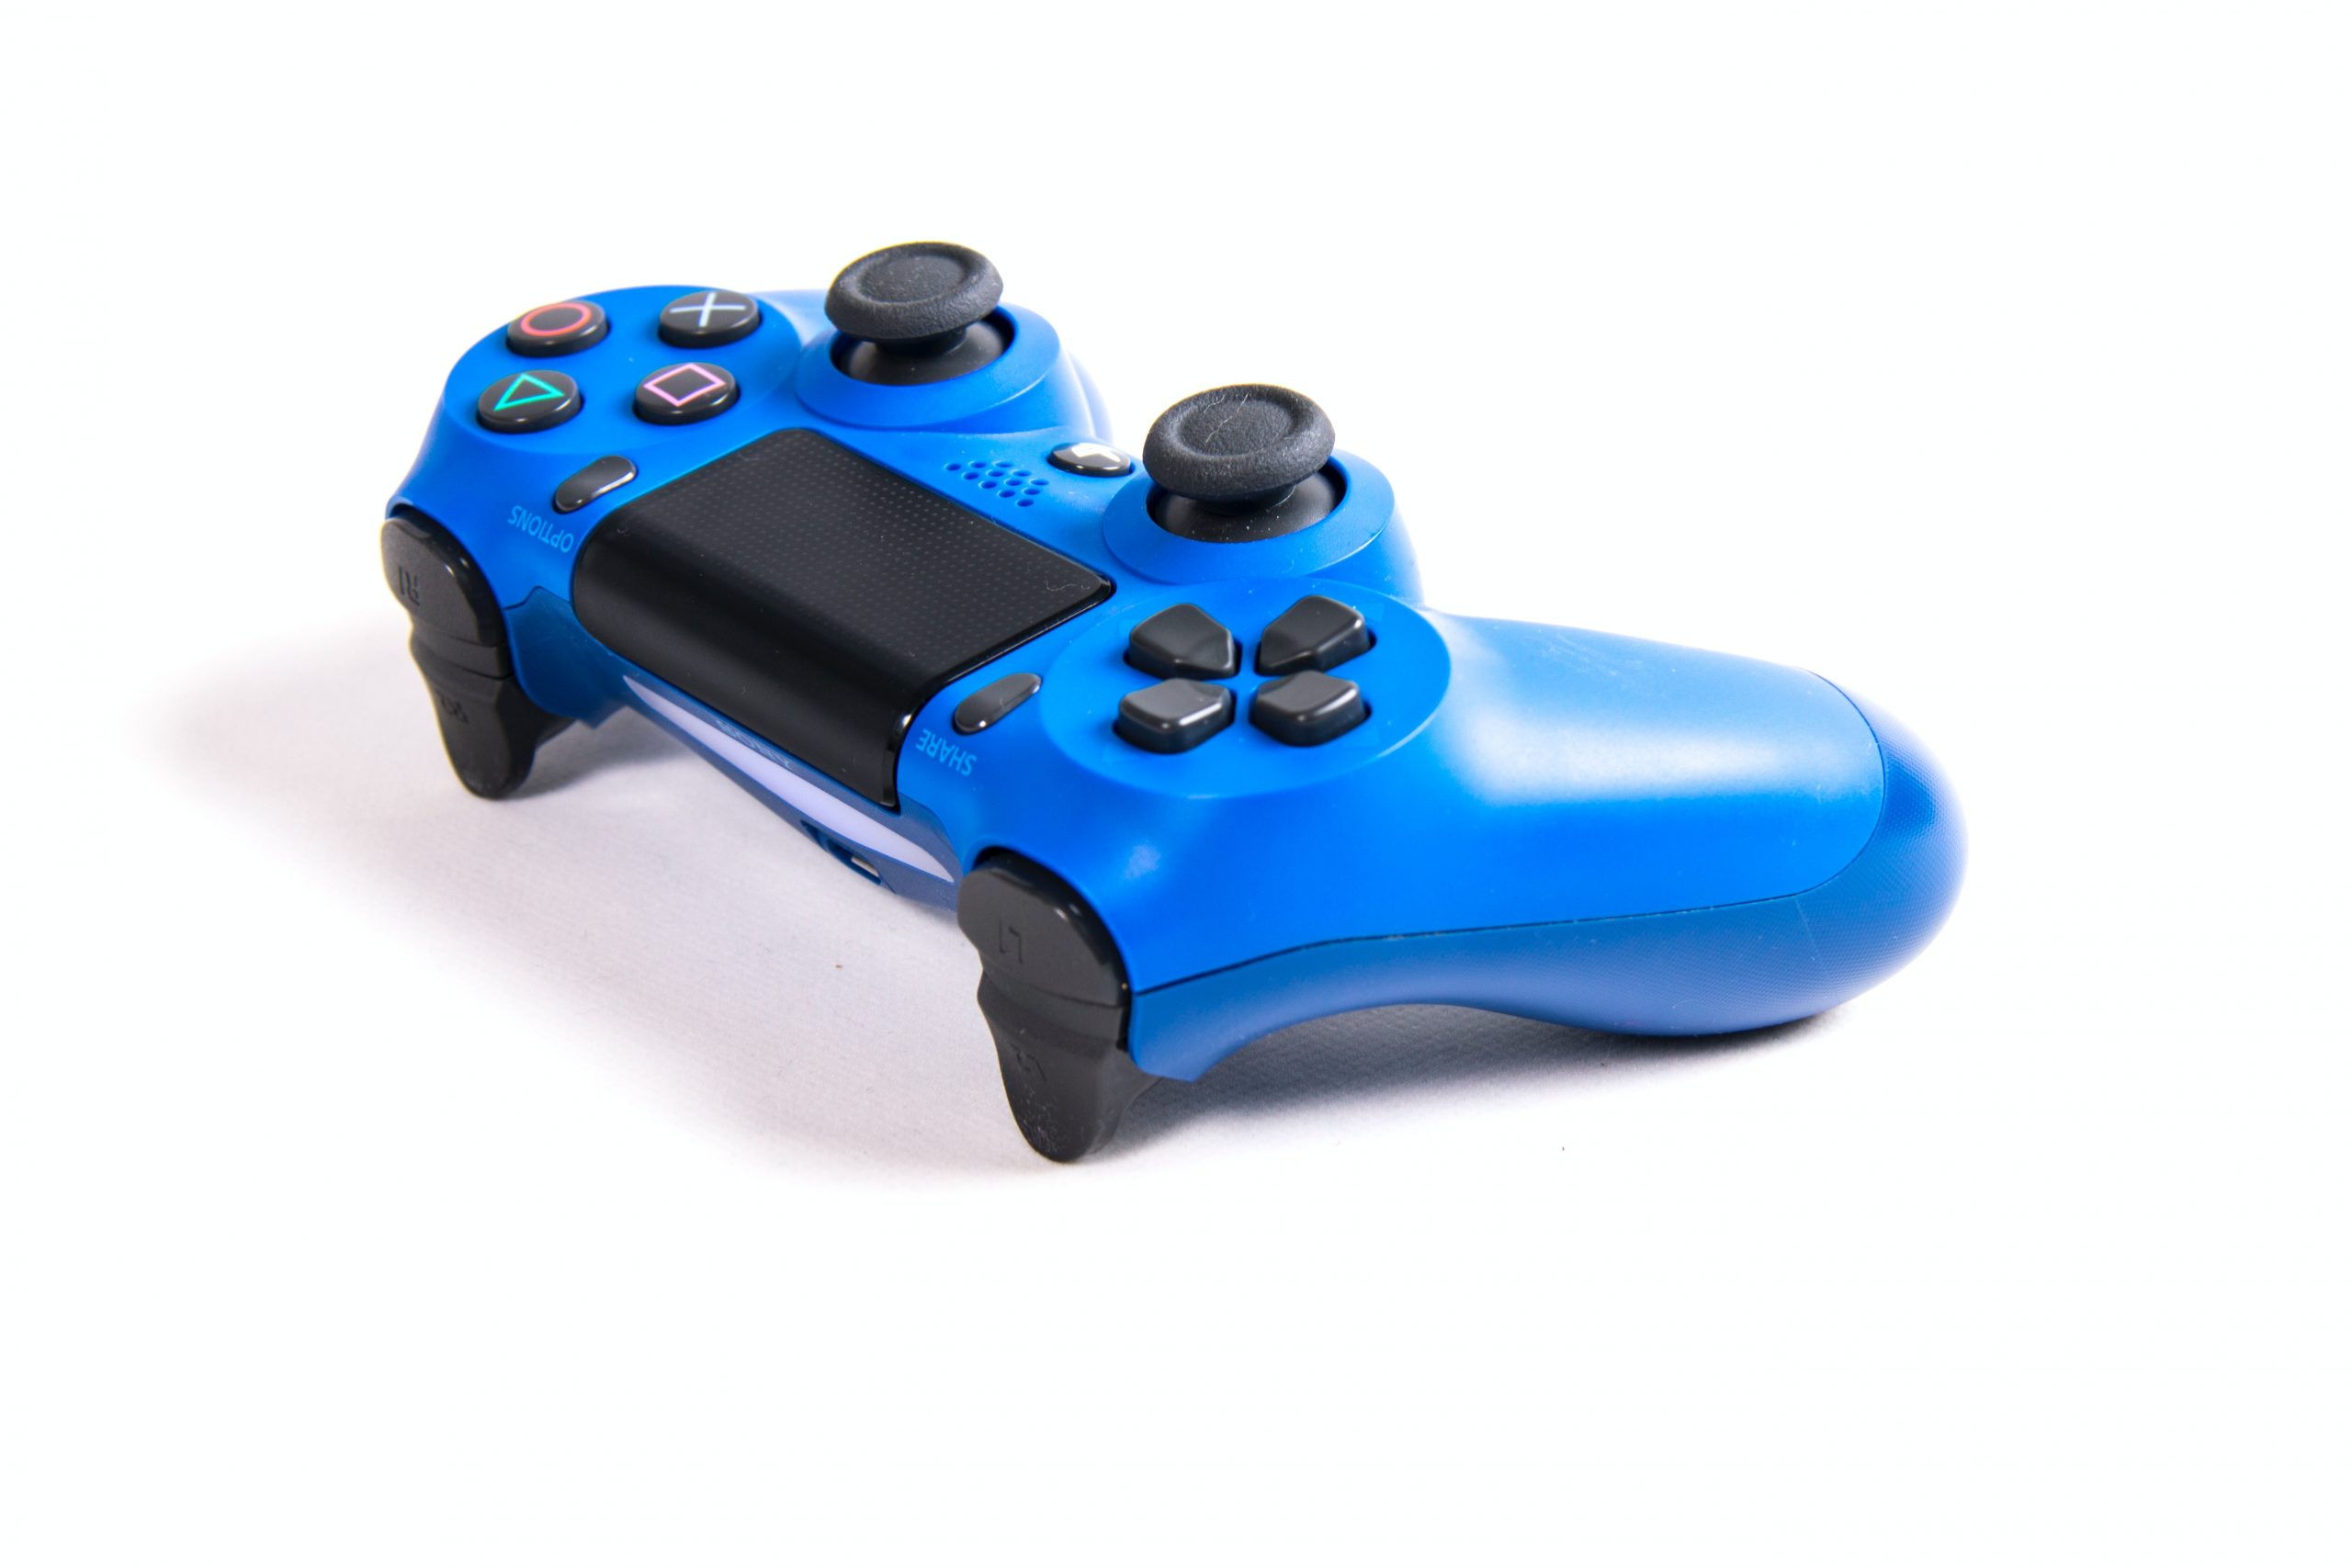 The PlayStation 4 Has Game Remotes That Have More to Offer Than Ever